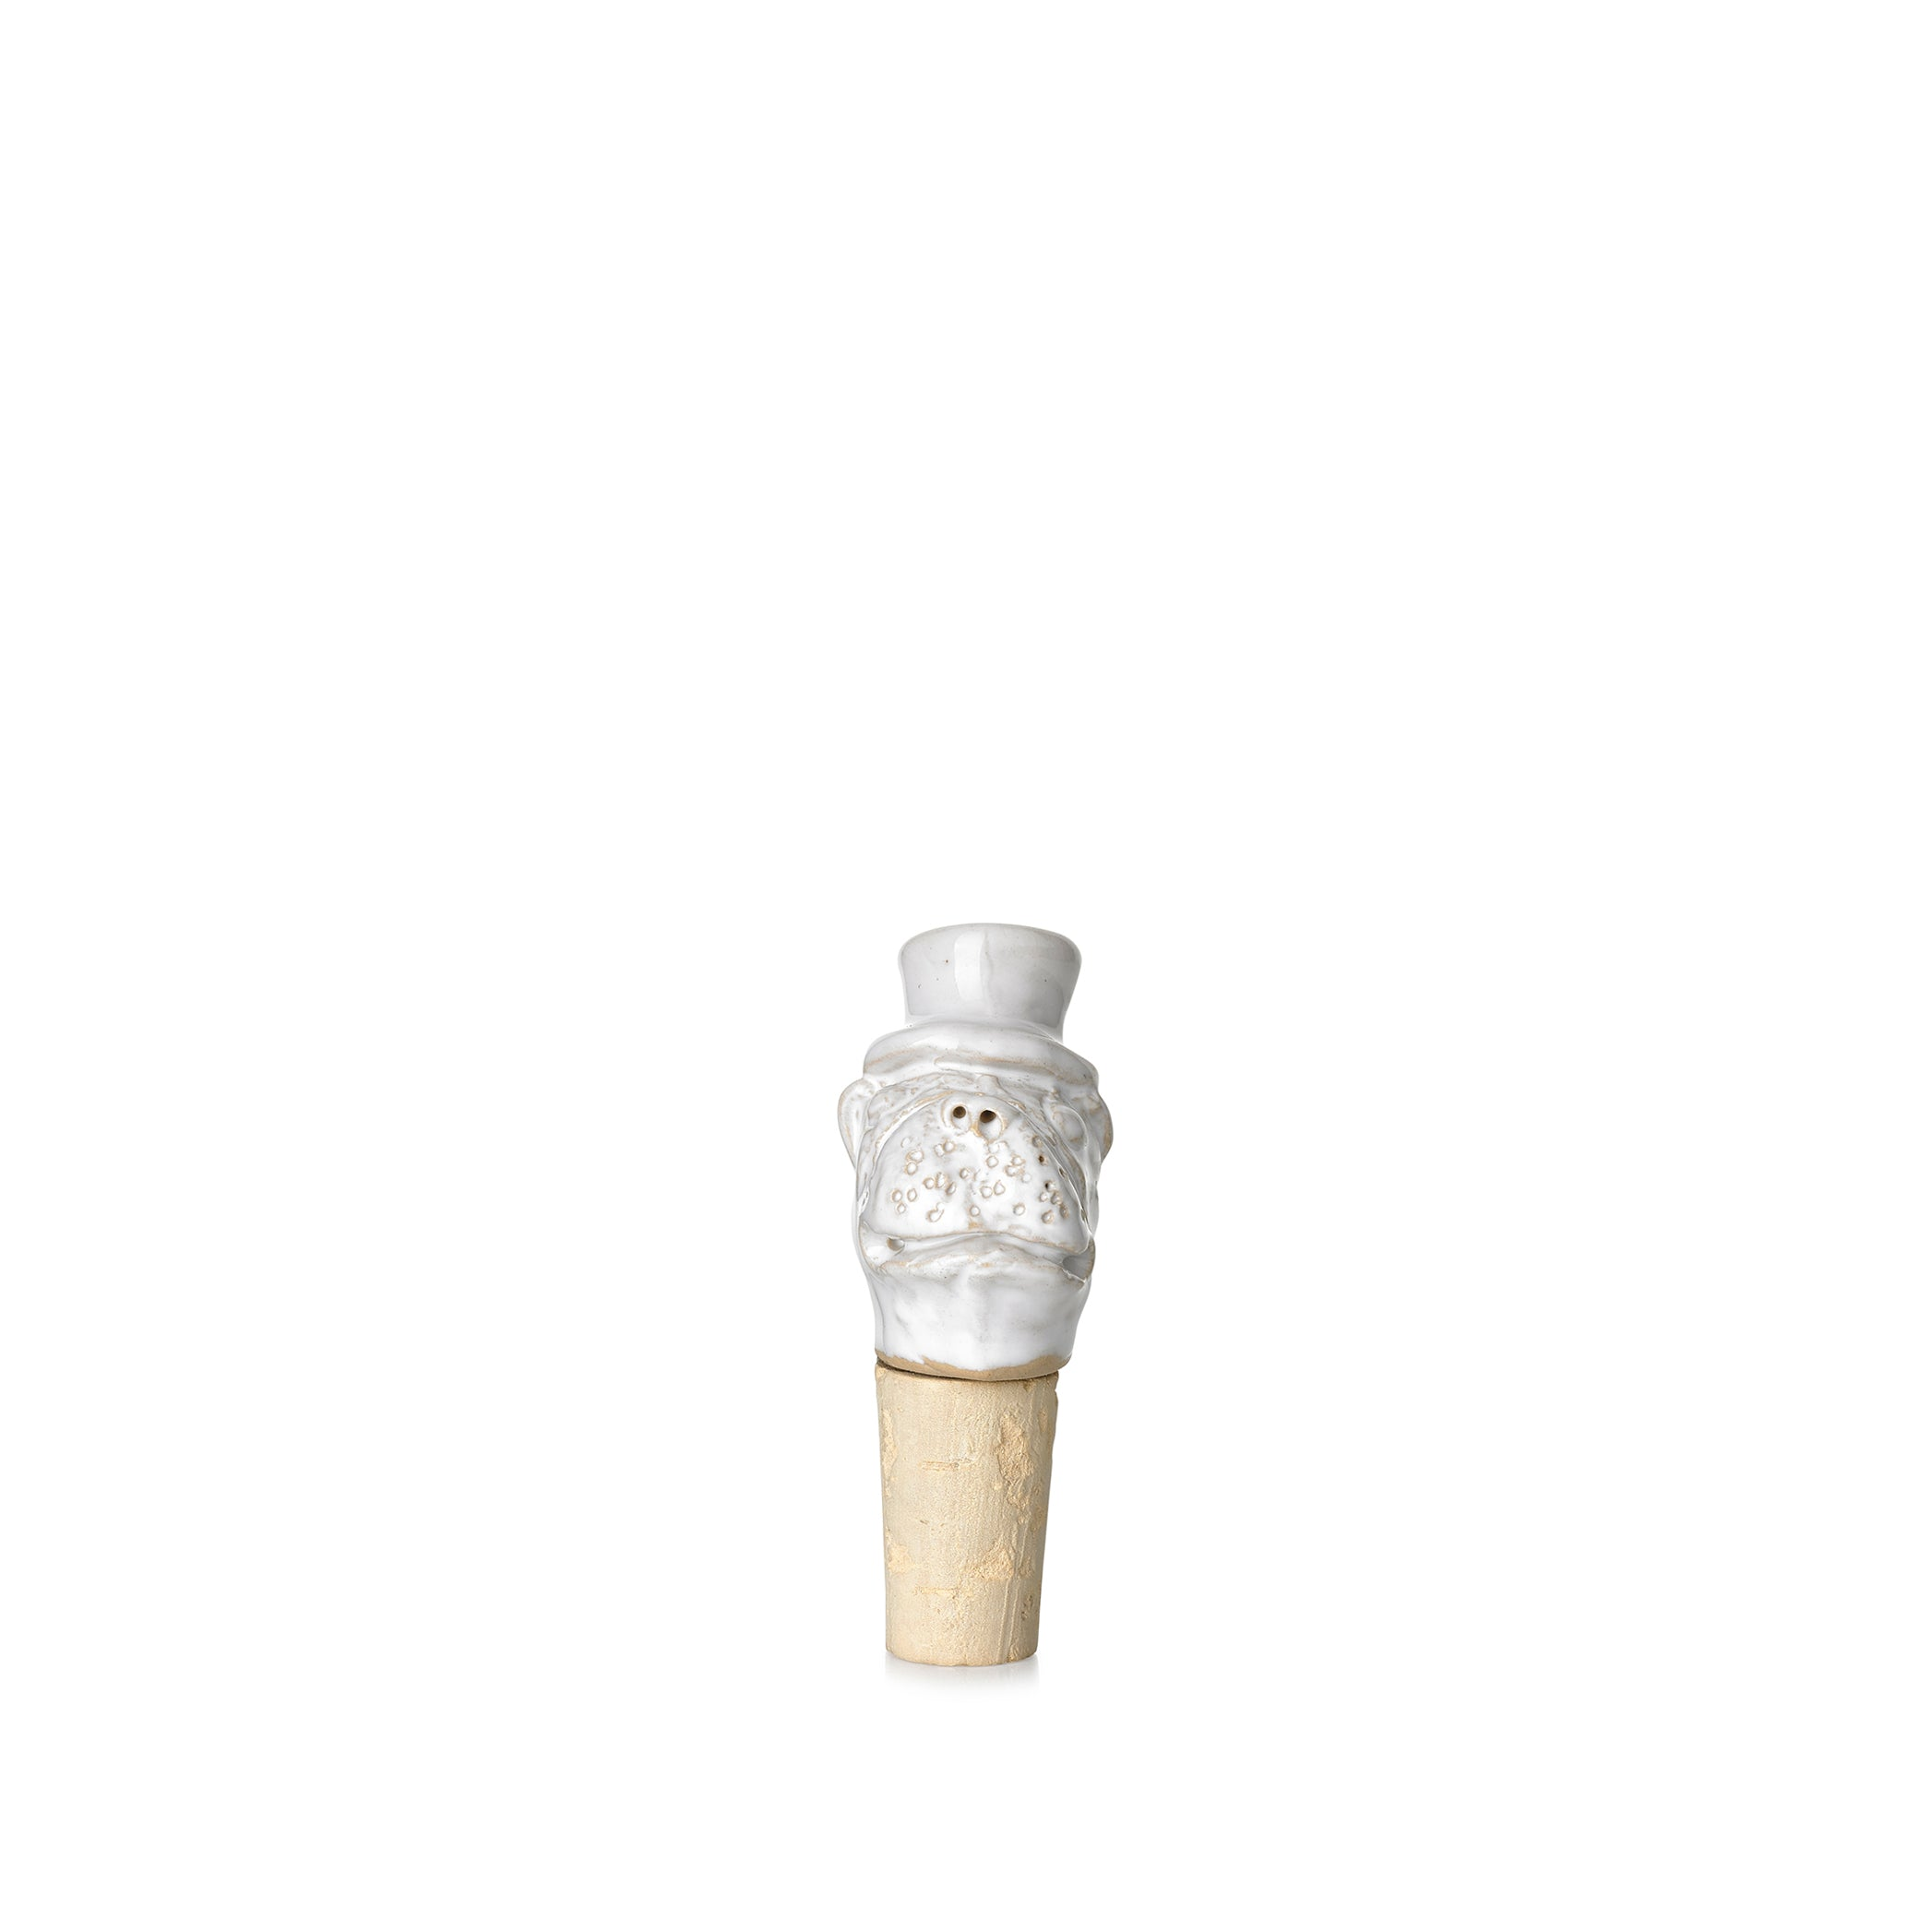 PRE ORDER - Canis 'Pug' Ceramic Bottle Stopper